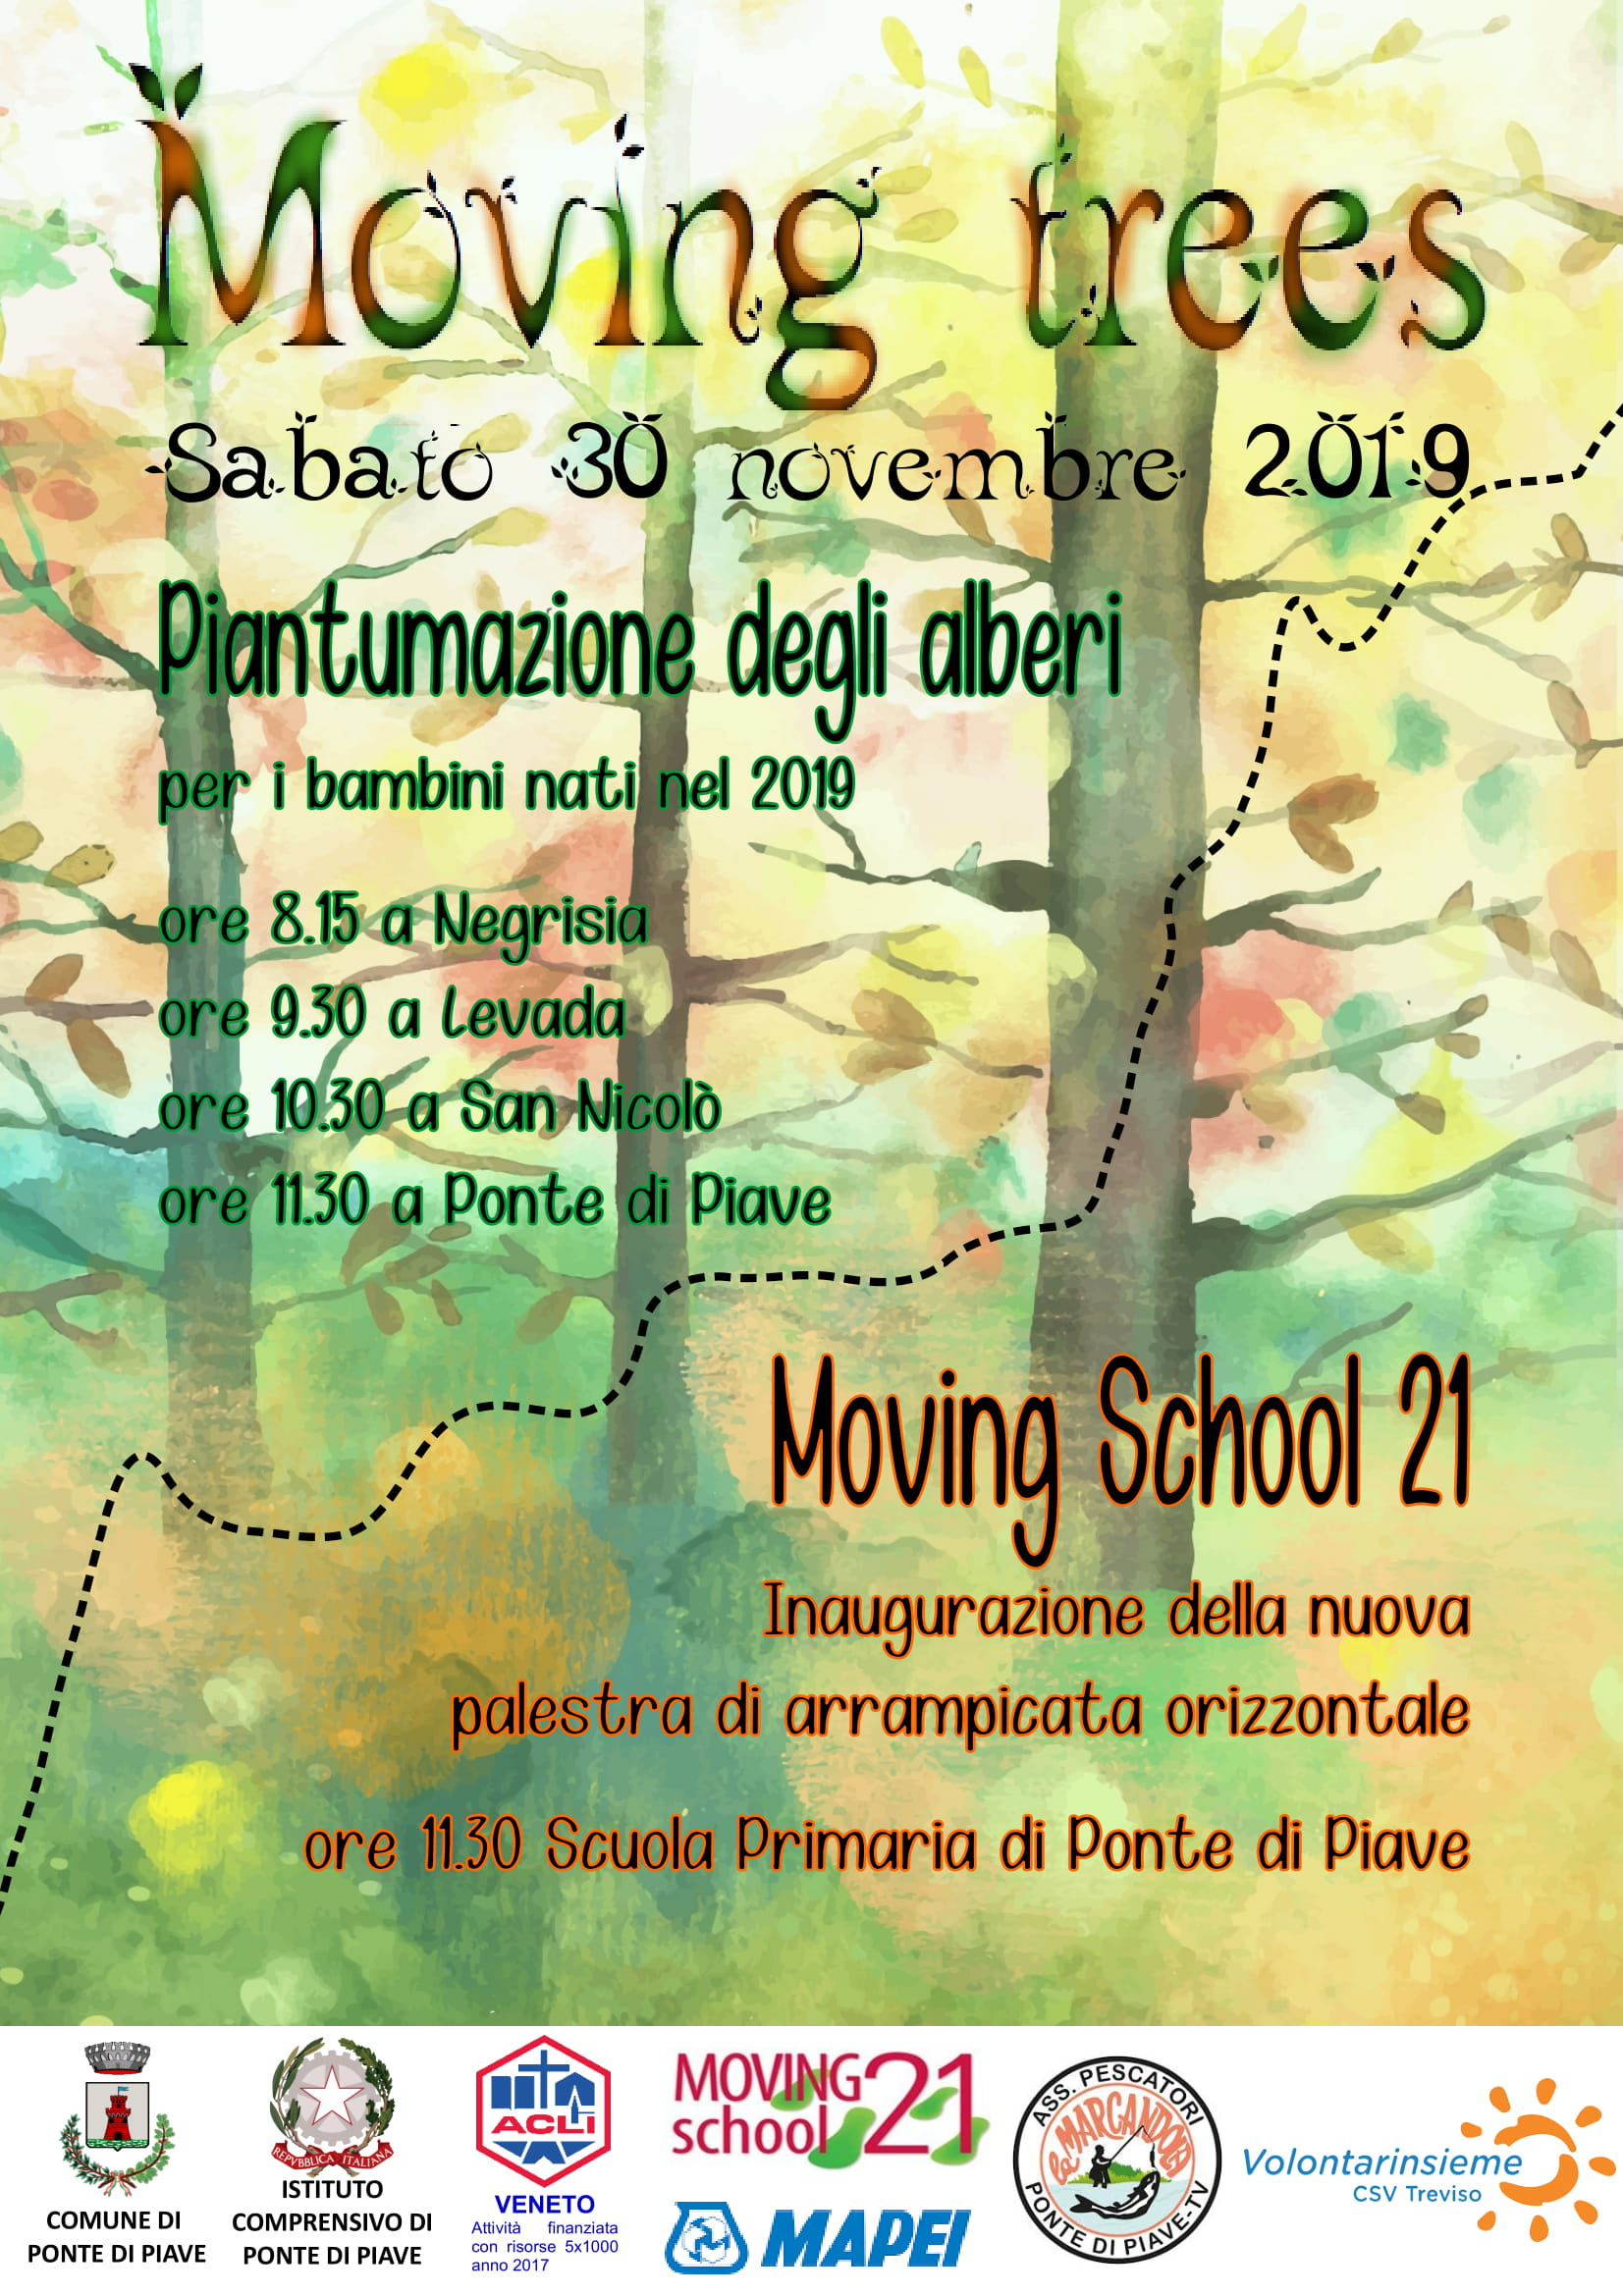 locandina moving trees